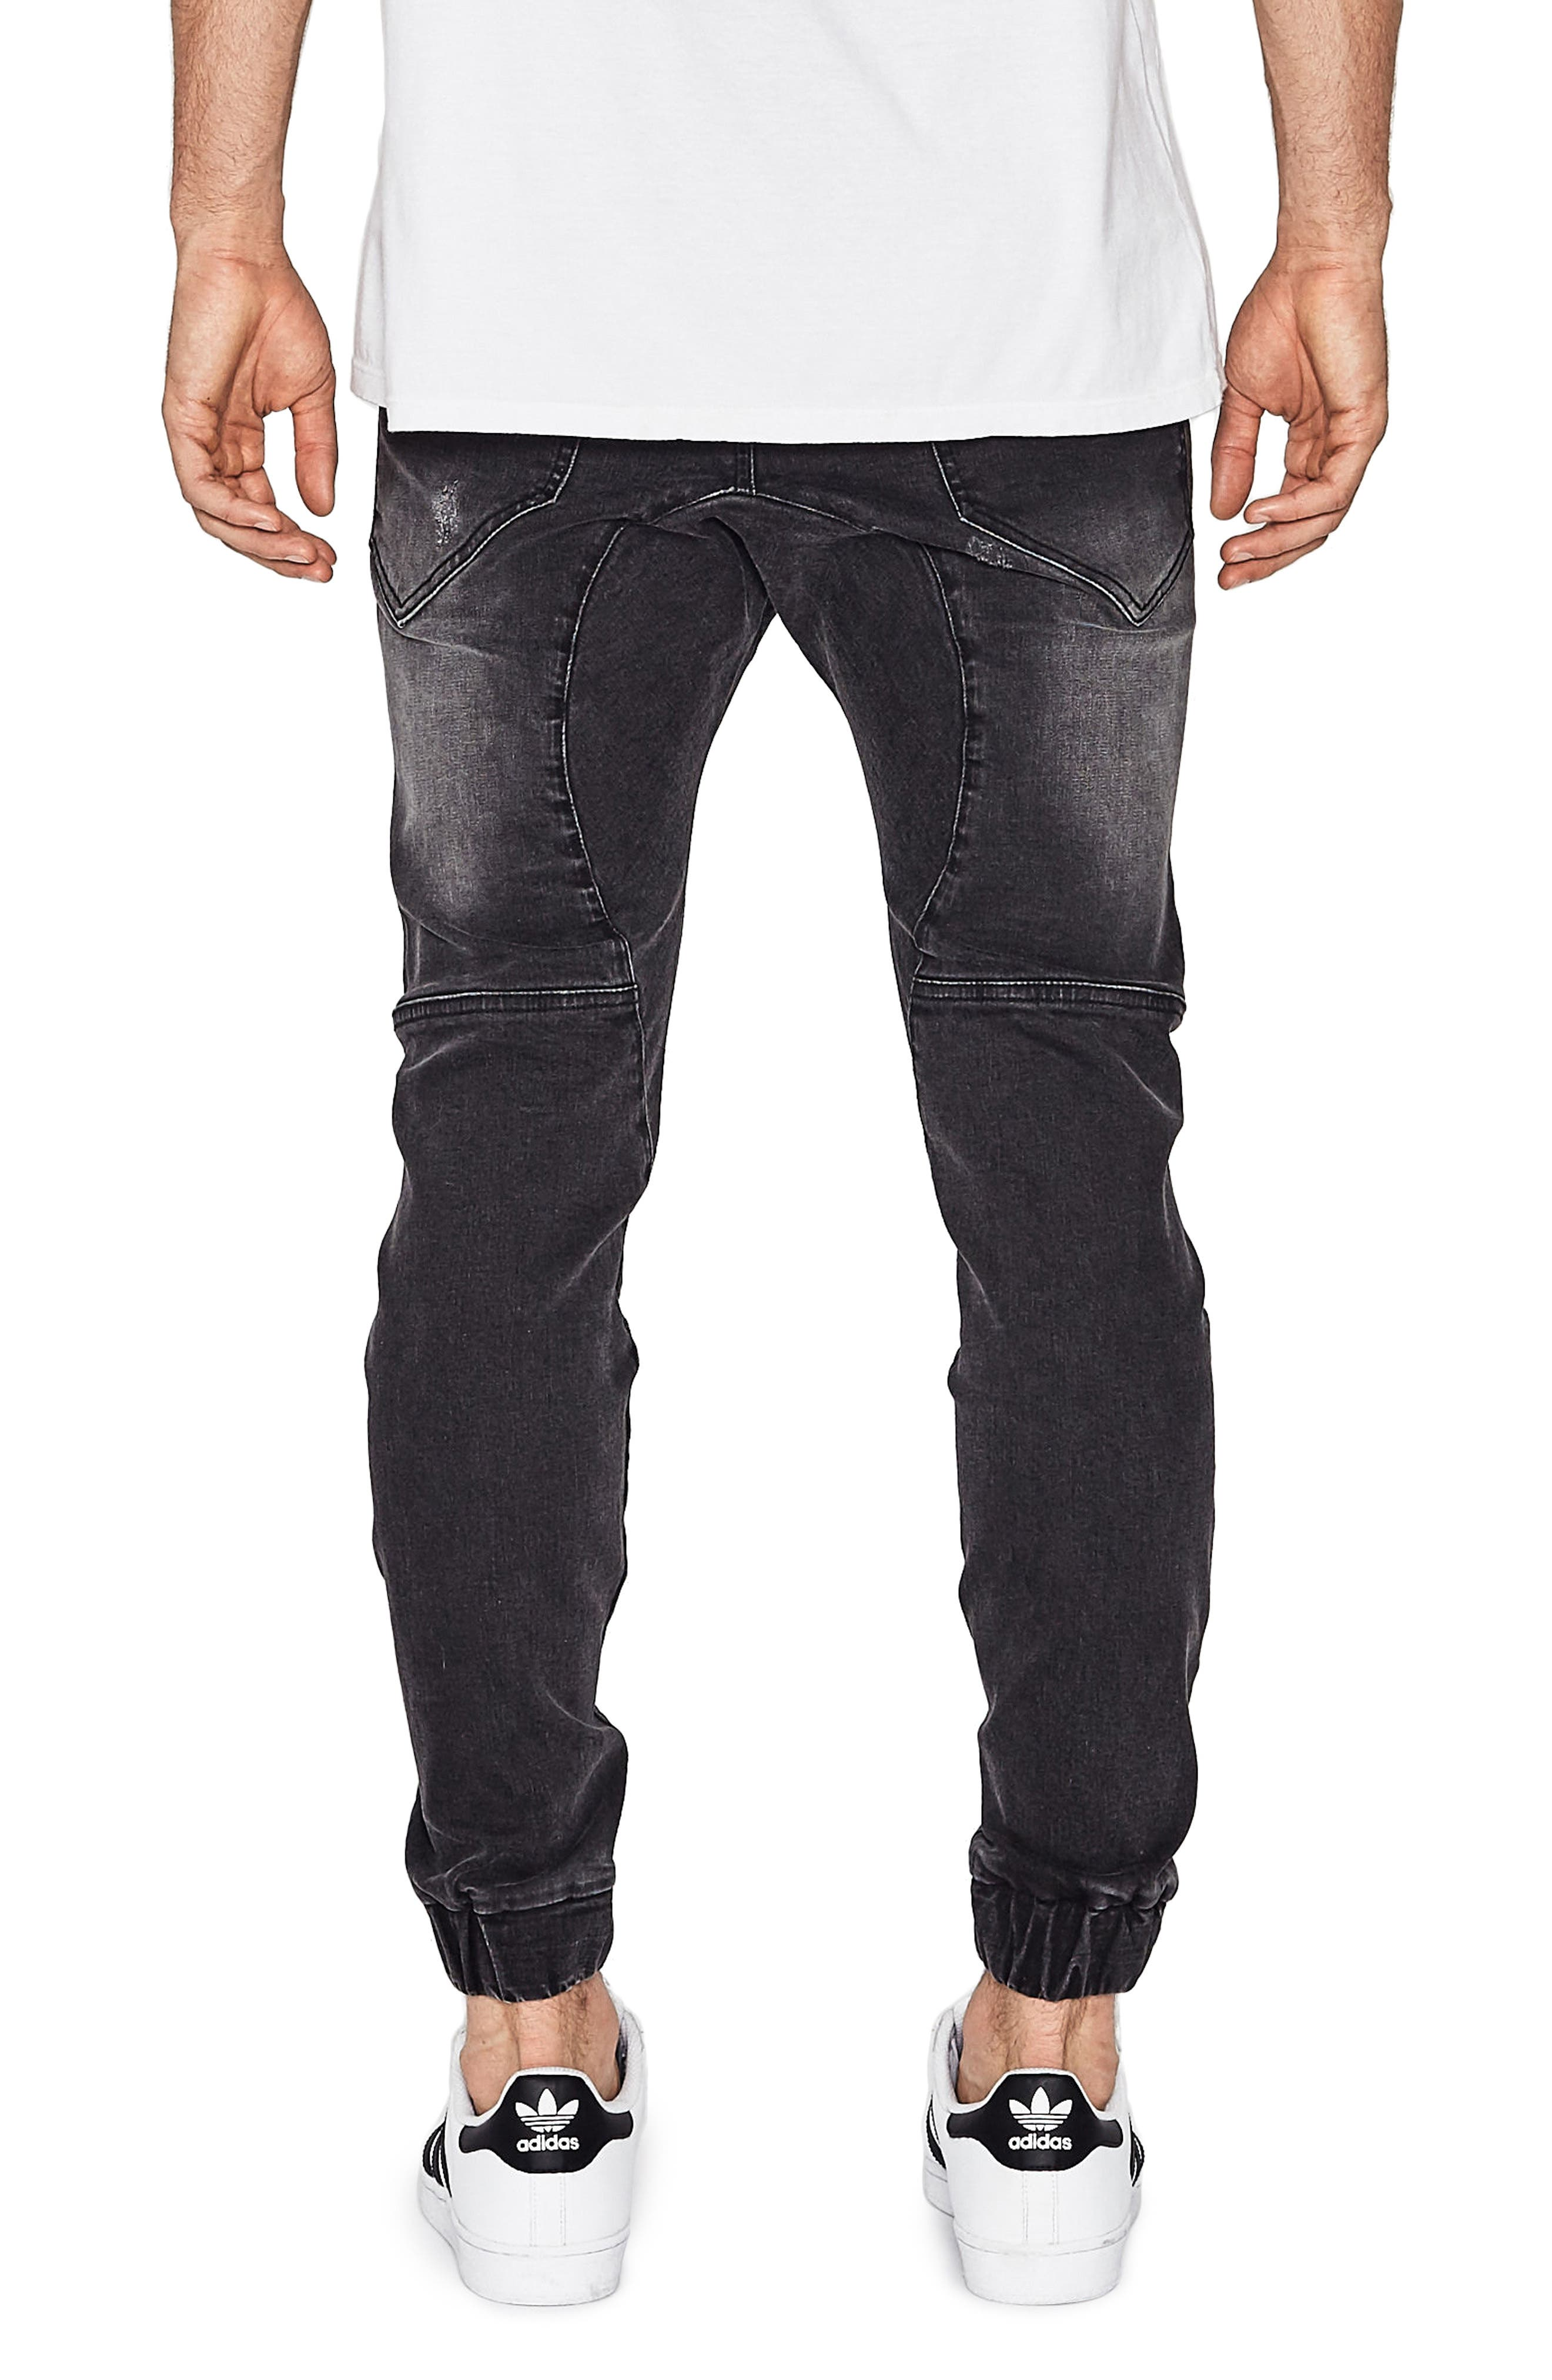 Destroyer Moto Denim Jogger Pants,                             Alternate thumbnail 2, color,                             014